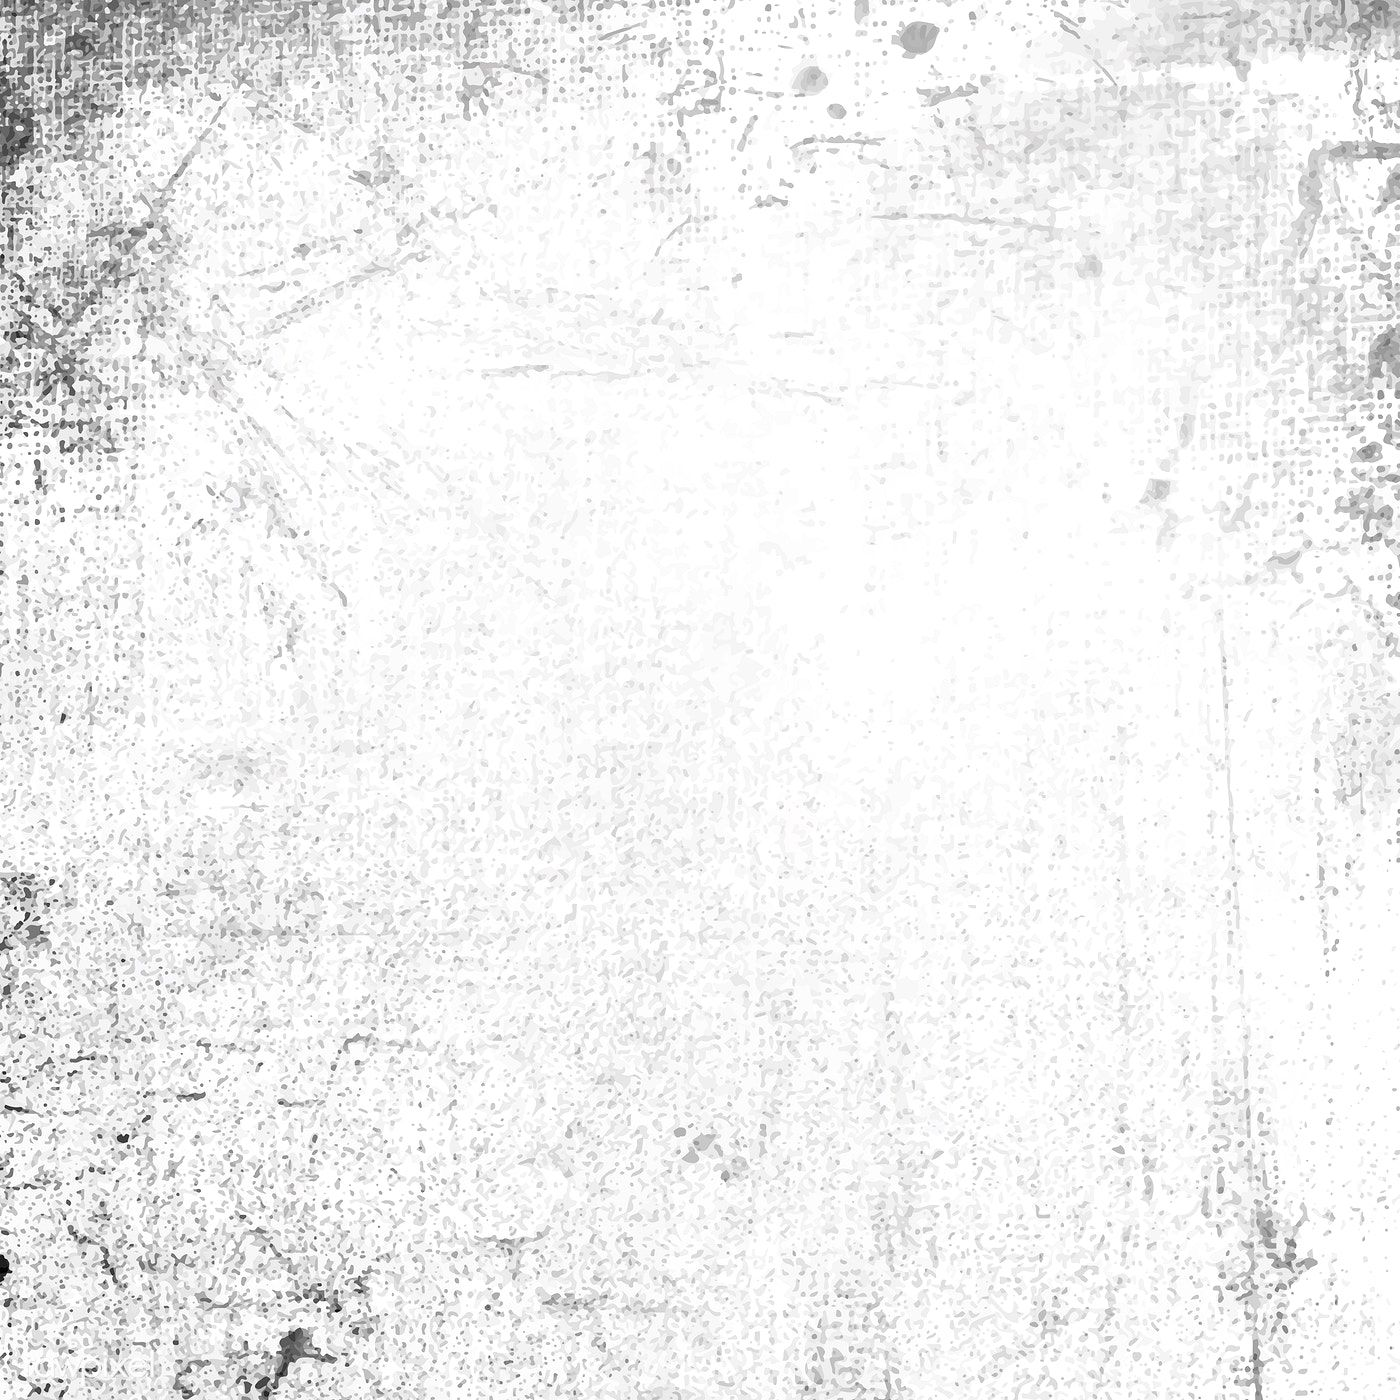 Grunge black and white distressed textured background